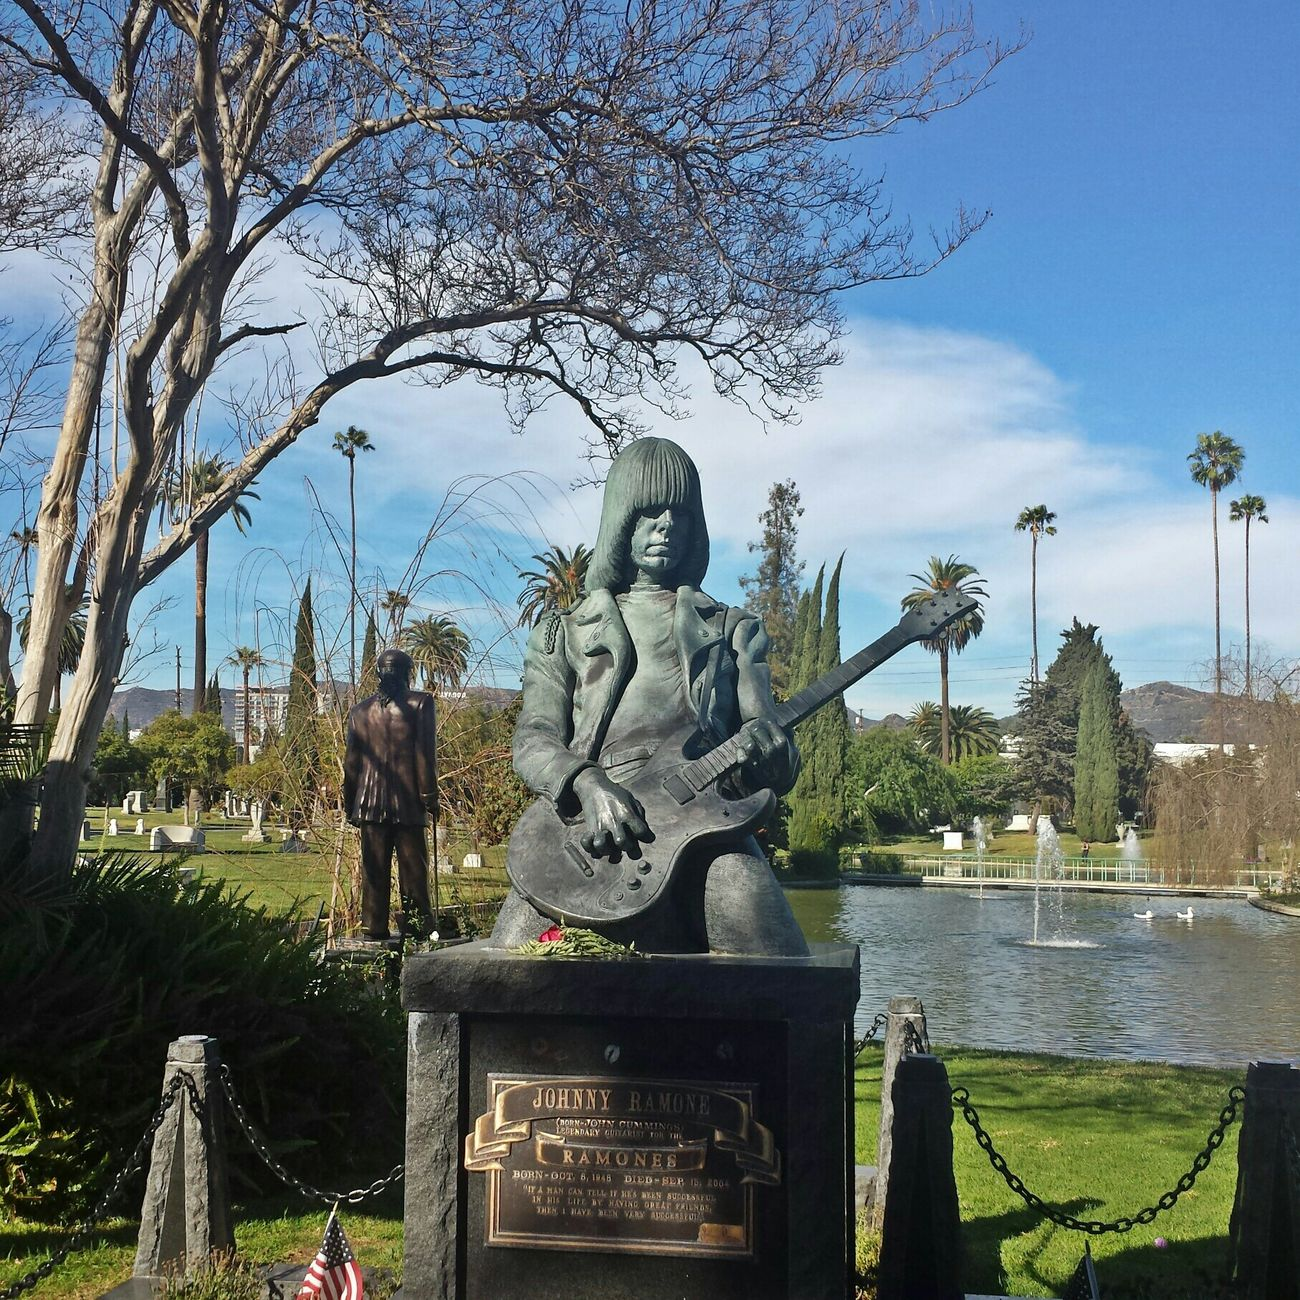 Johnnyramone of Theramones at Hollywoodforevercemetery Best Band Ever